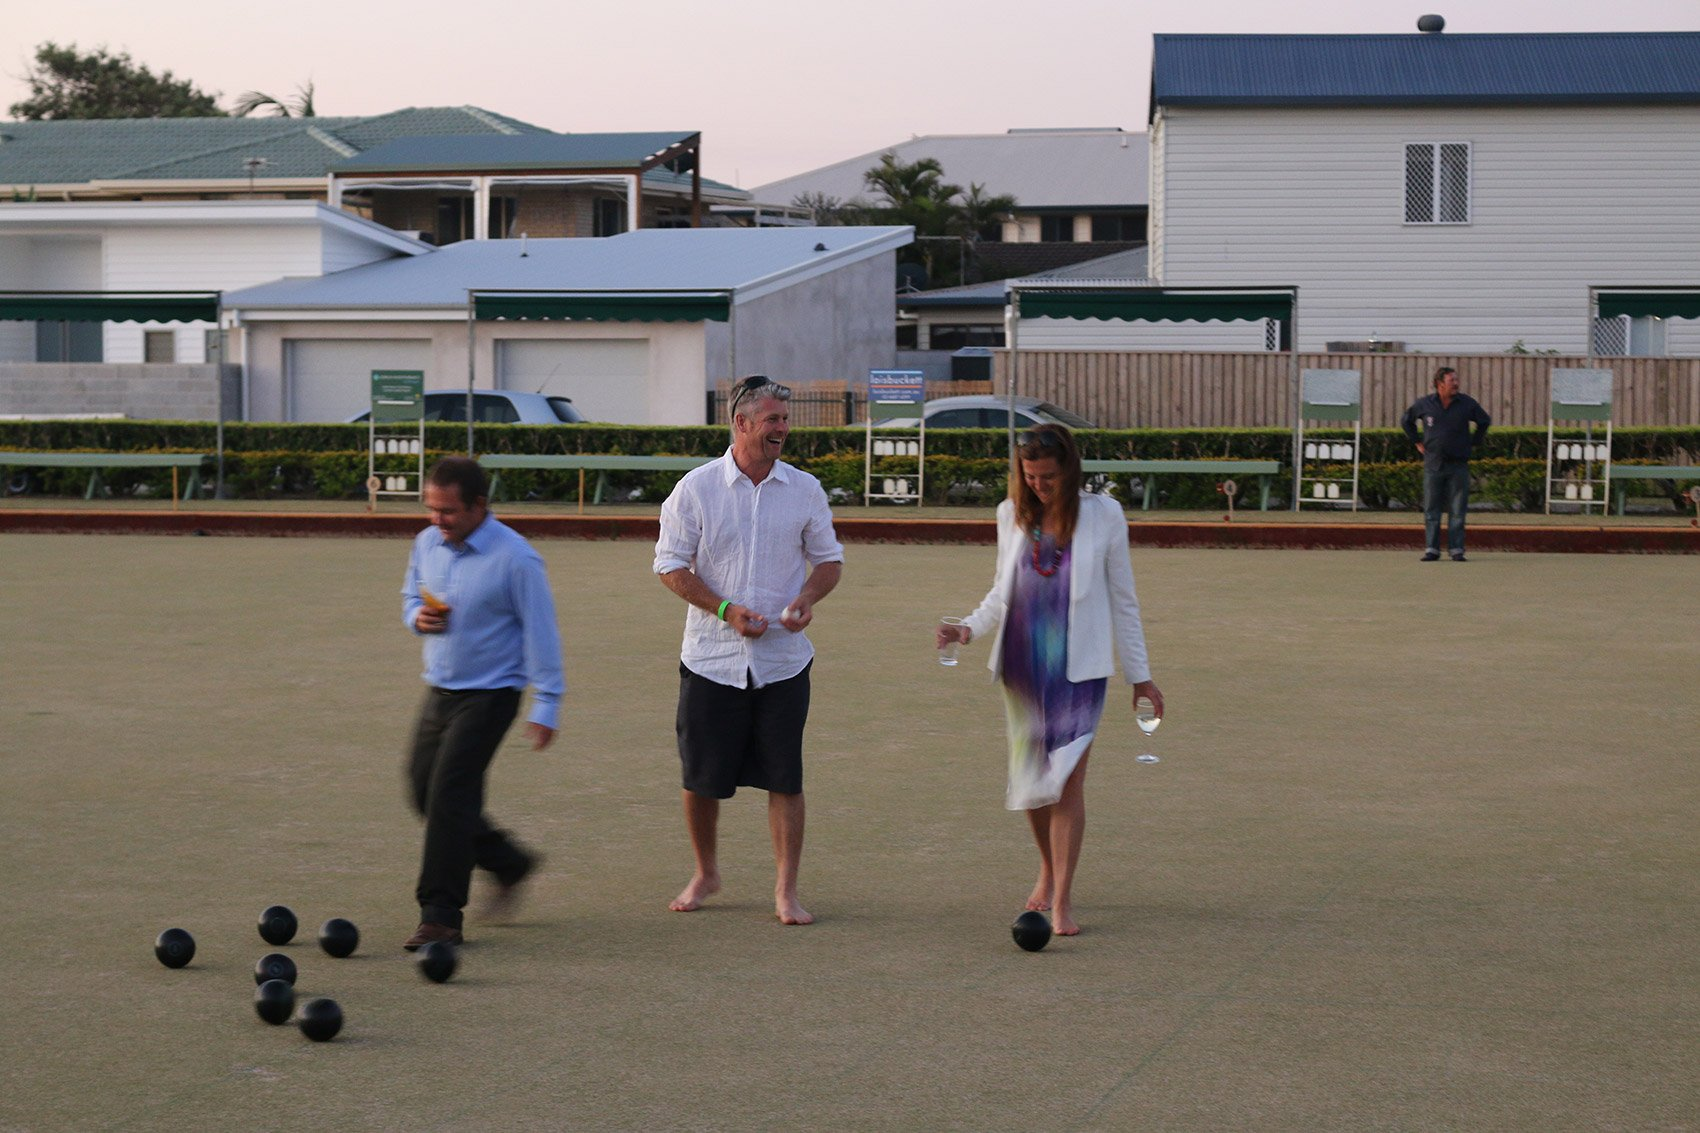 friends playing lawn bowls